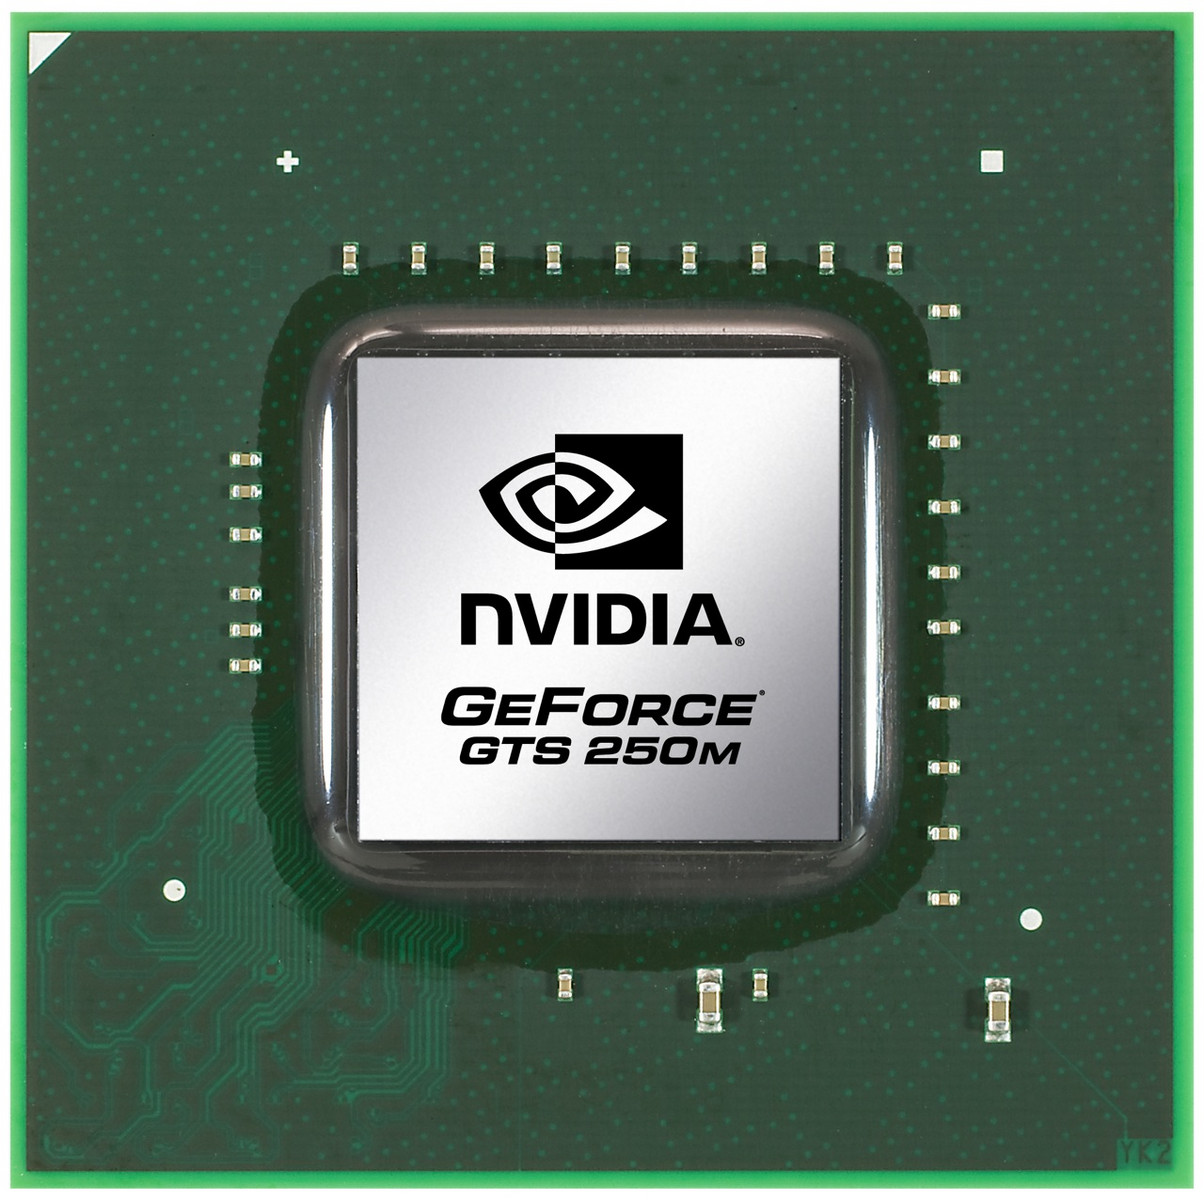 nvidia geforce gts 250 drivers windows 7 32-bit